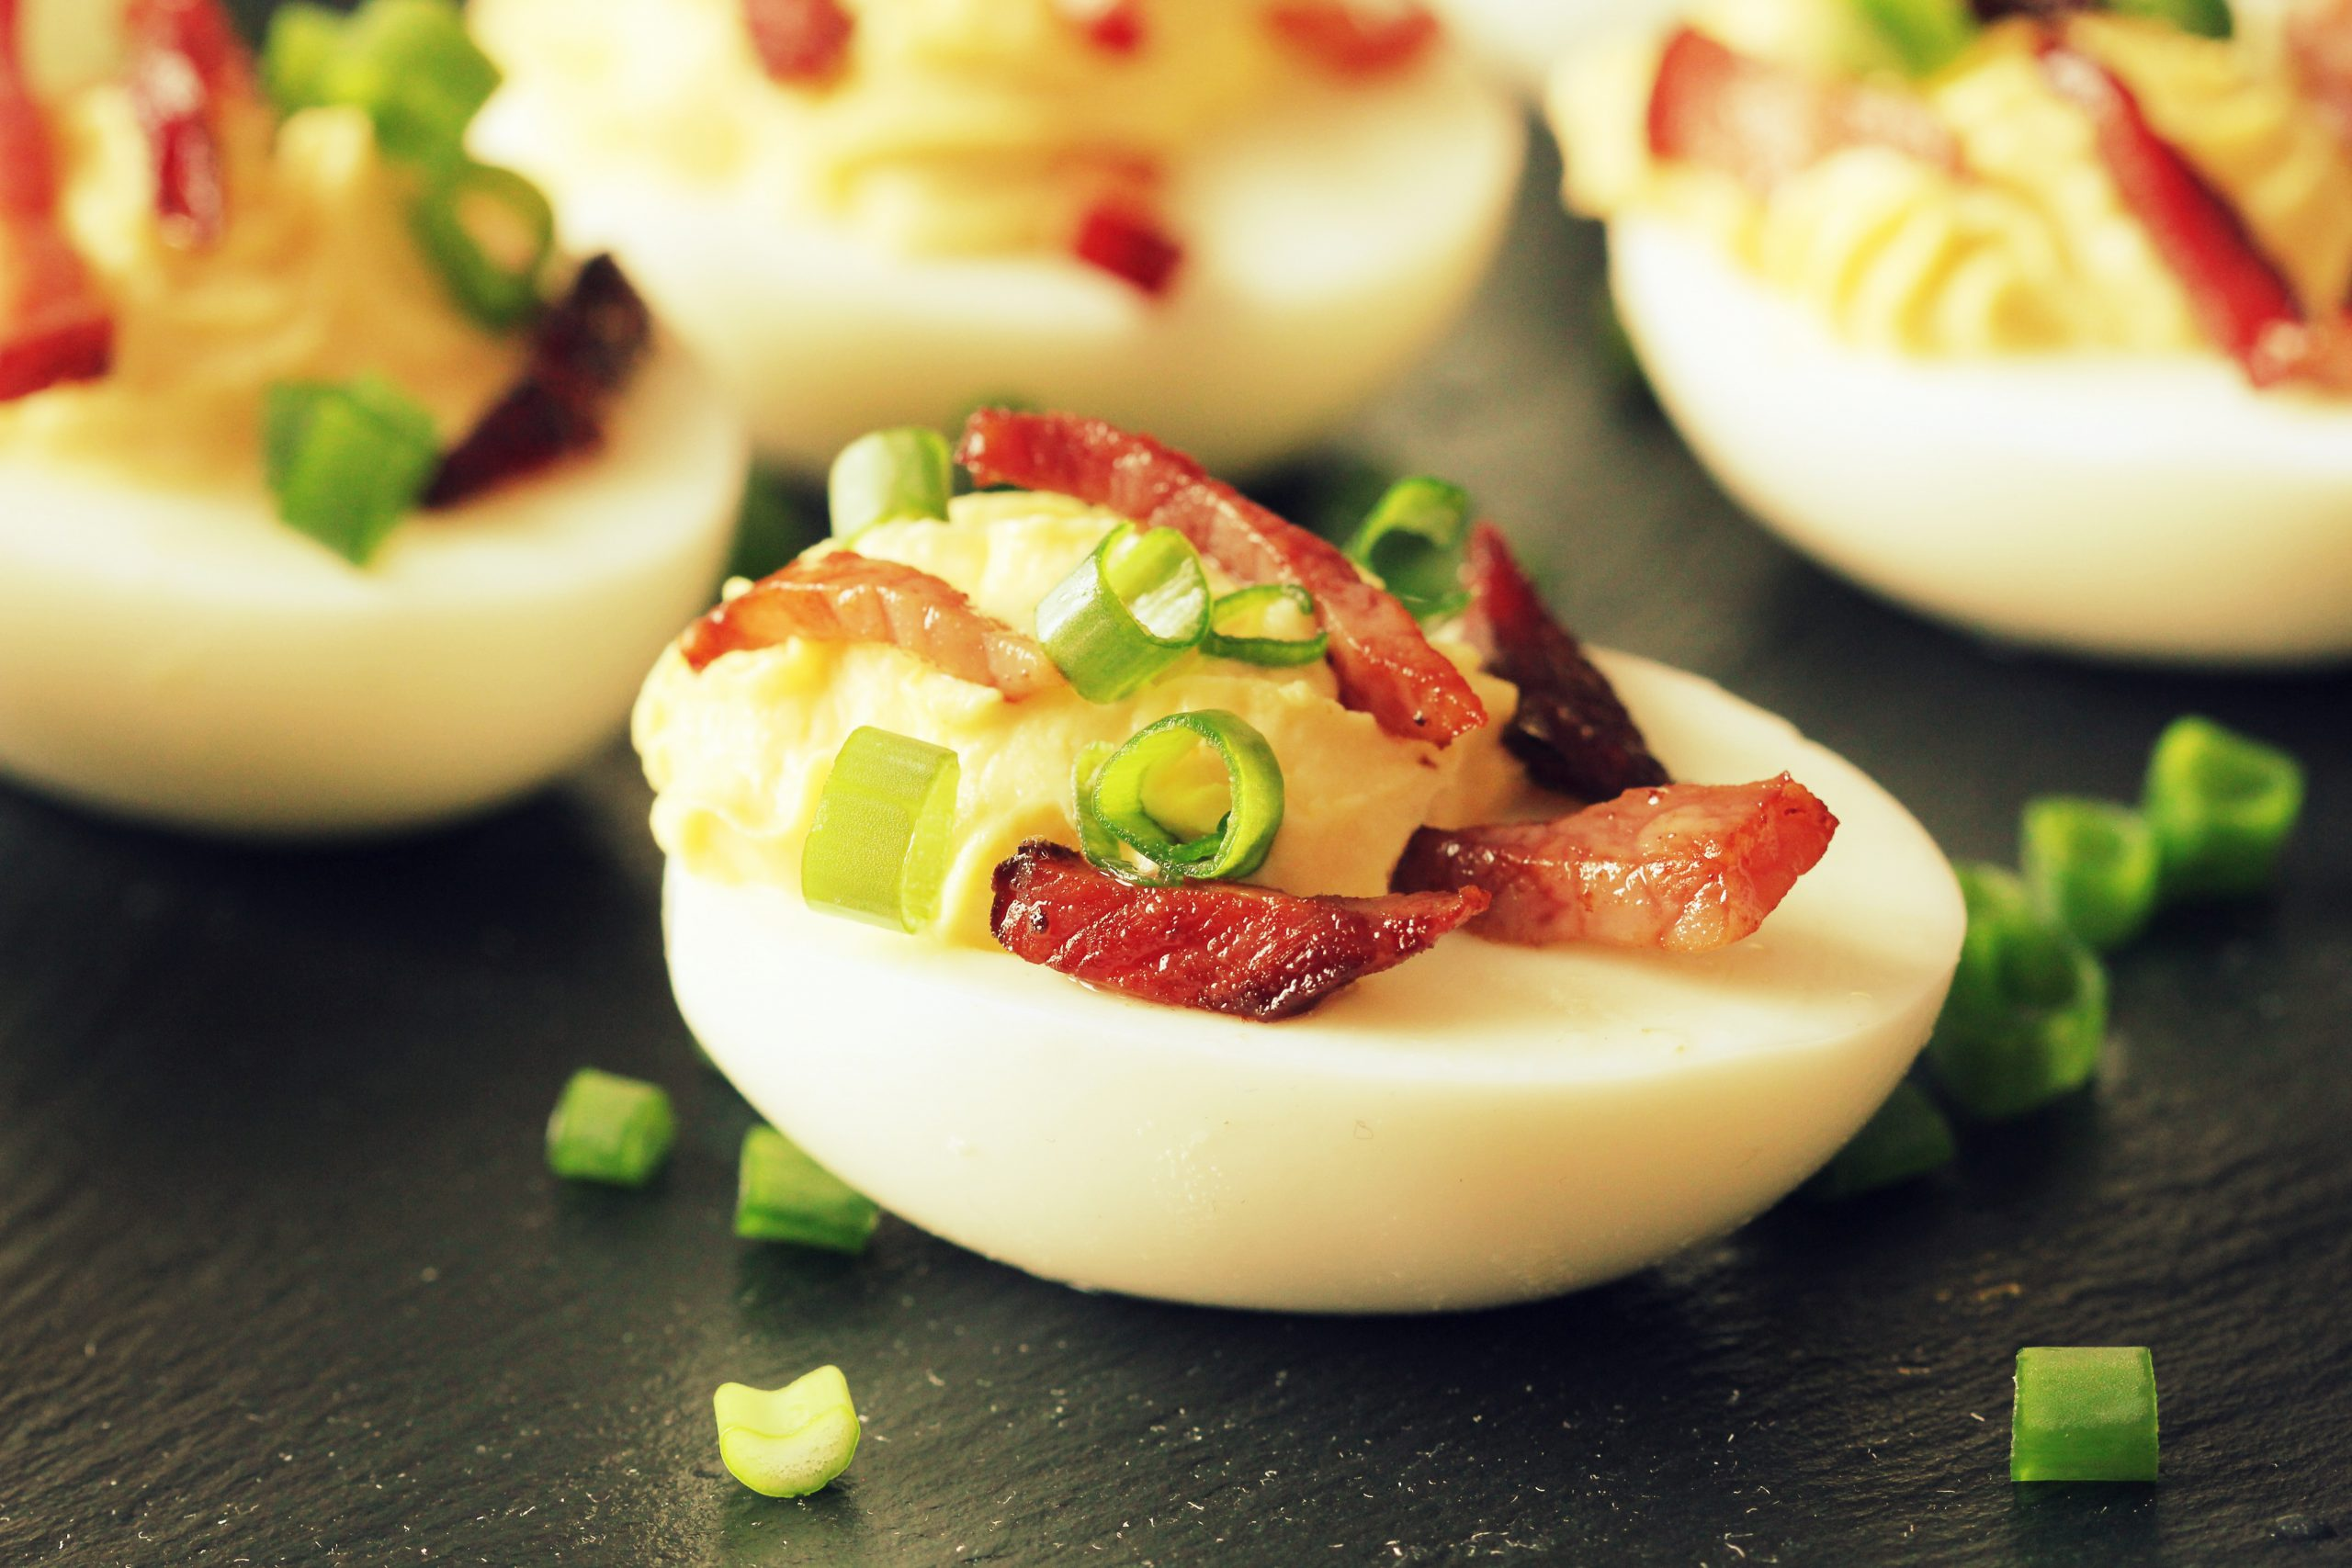 Looking for a quick and easy low carb snack or a yummy side dish for your next party? Check out this Spicy Bacon Deviled Eggs recipe. #mannthatlooksgood #keto #deviledeggs #bacon #lowcarb #holidayrecipes #eggs